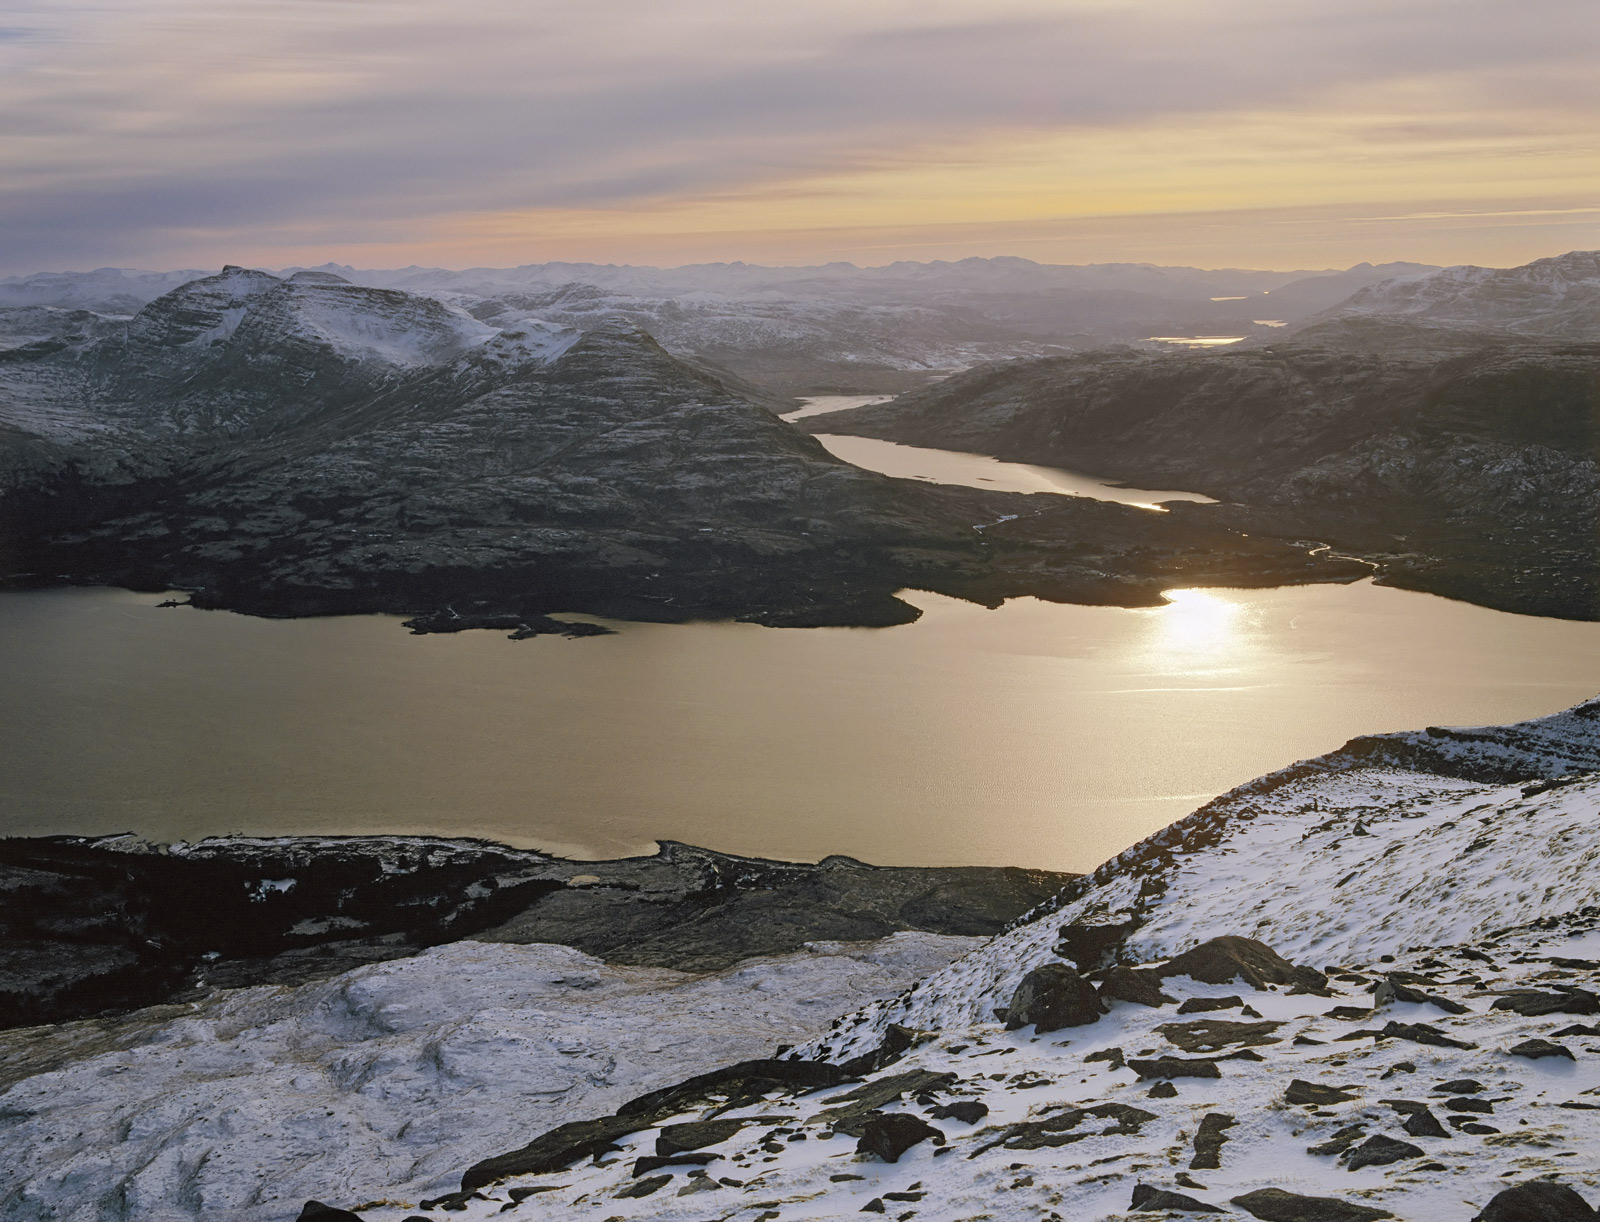 High on the top of a munro looking down at snow dusted Loch Torridon at sunset, up there you feel it is your own personal mountain...